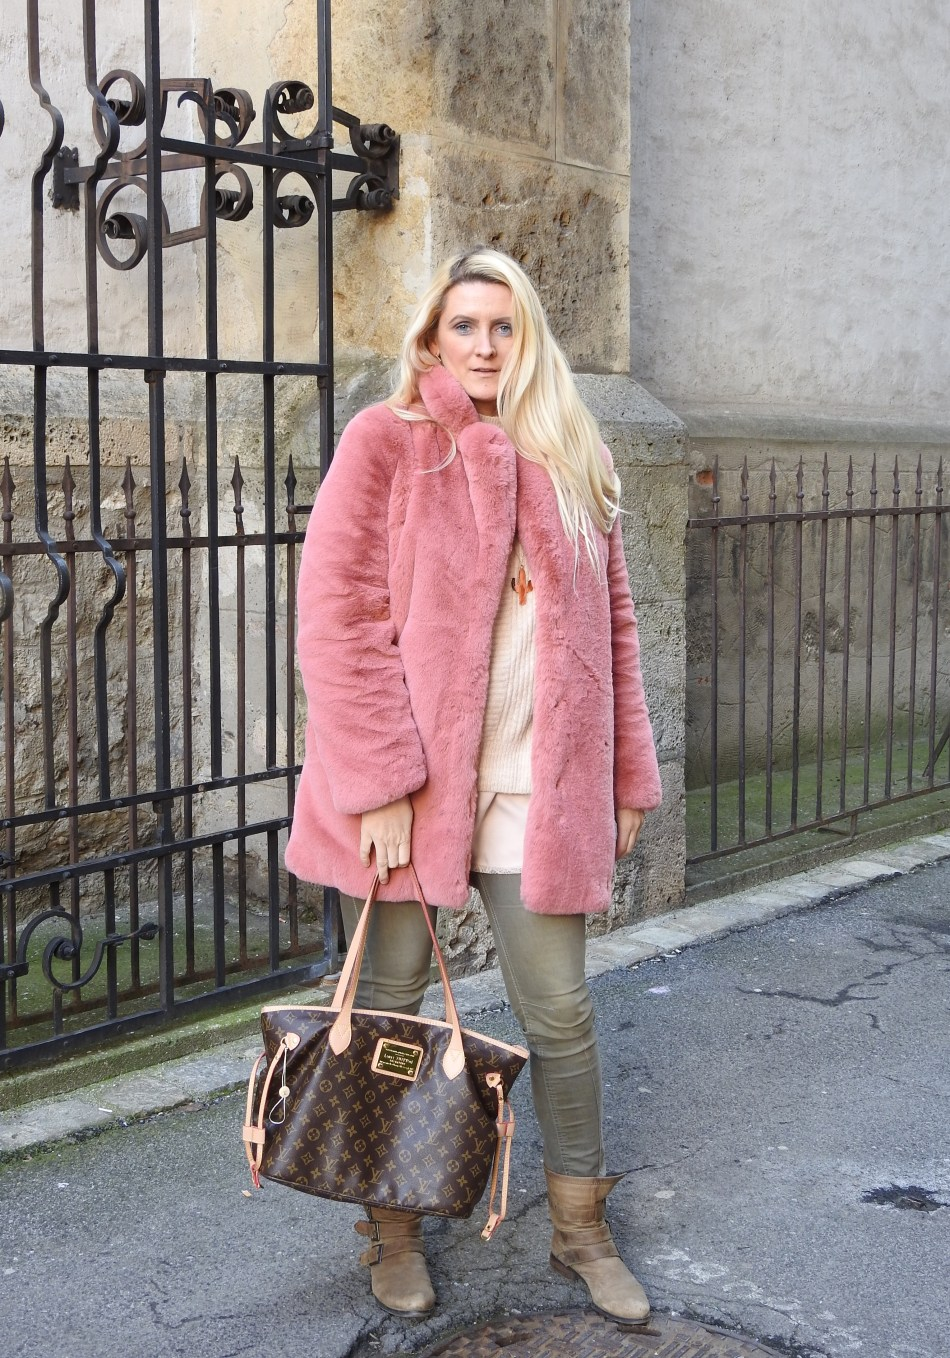 Fakefur-Coat-Pink-Fur-Louis-Vuitton-Bag-Booties-khaki-Denim-carrieslifestyle-Tamara-Prutsch-Winter-Snow